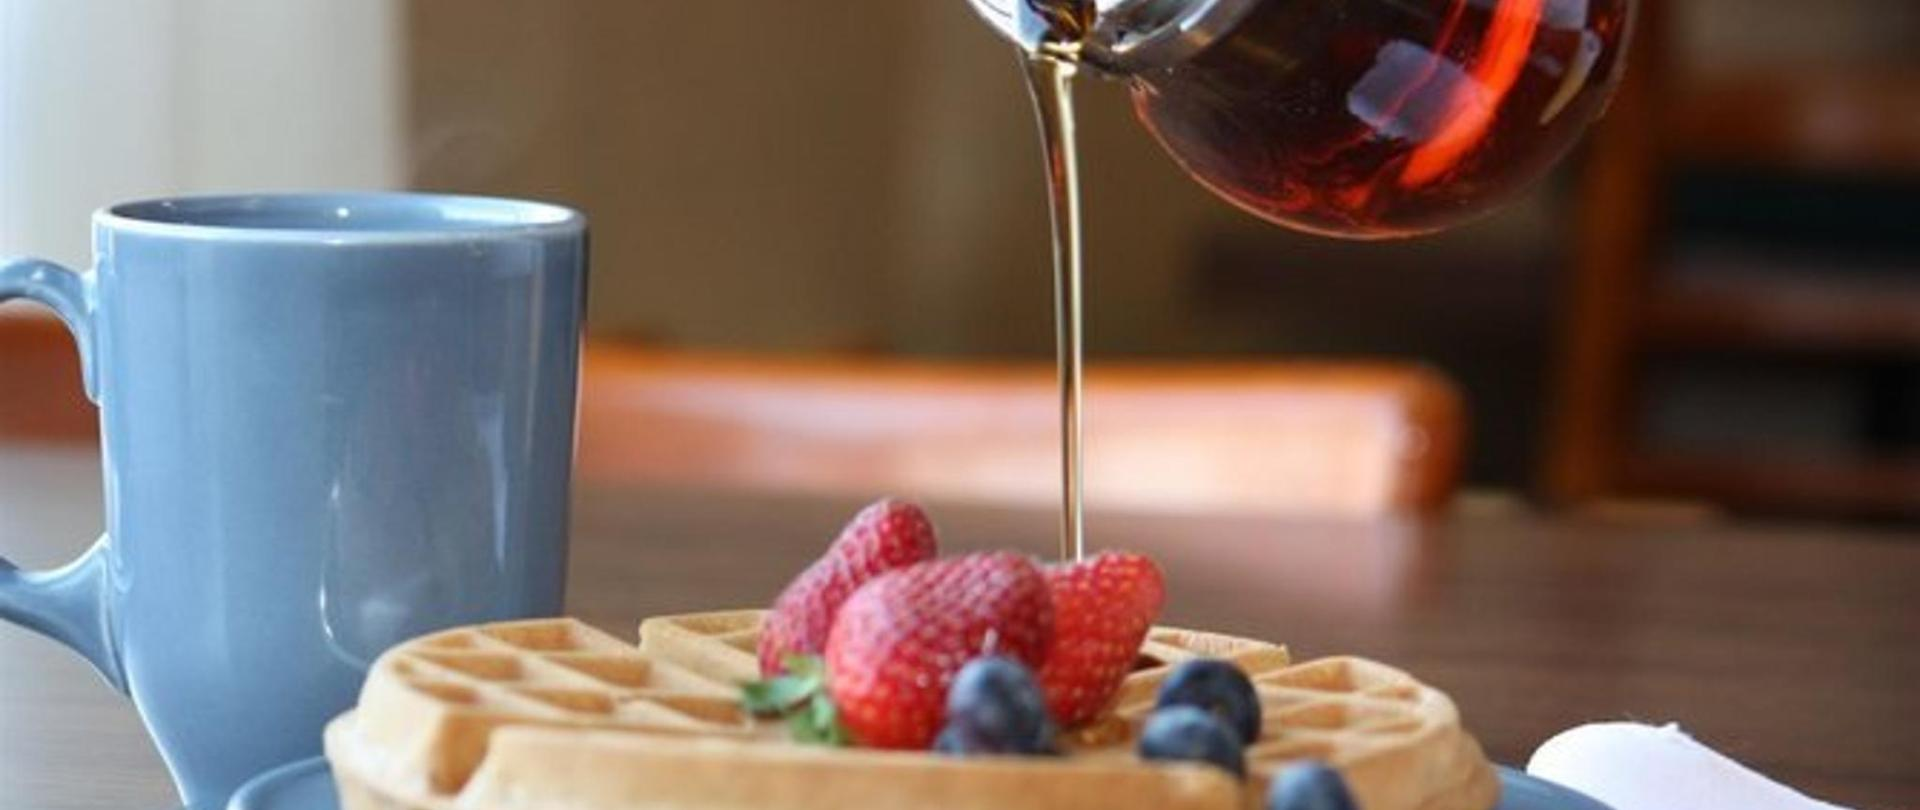 delicious-waffles-with-syrup.JPG.670x379_default.JPG